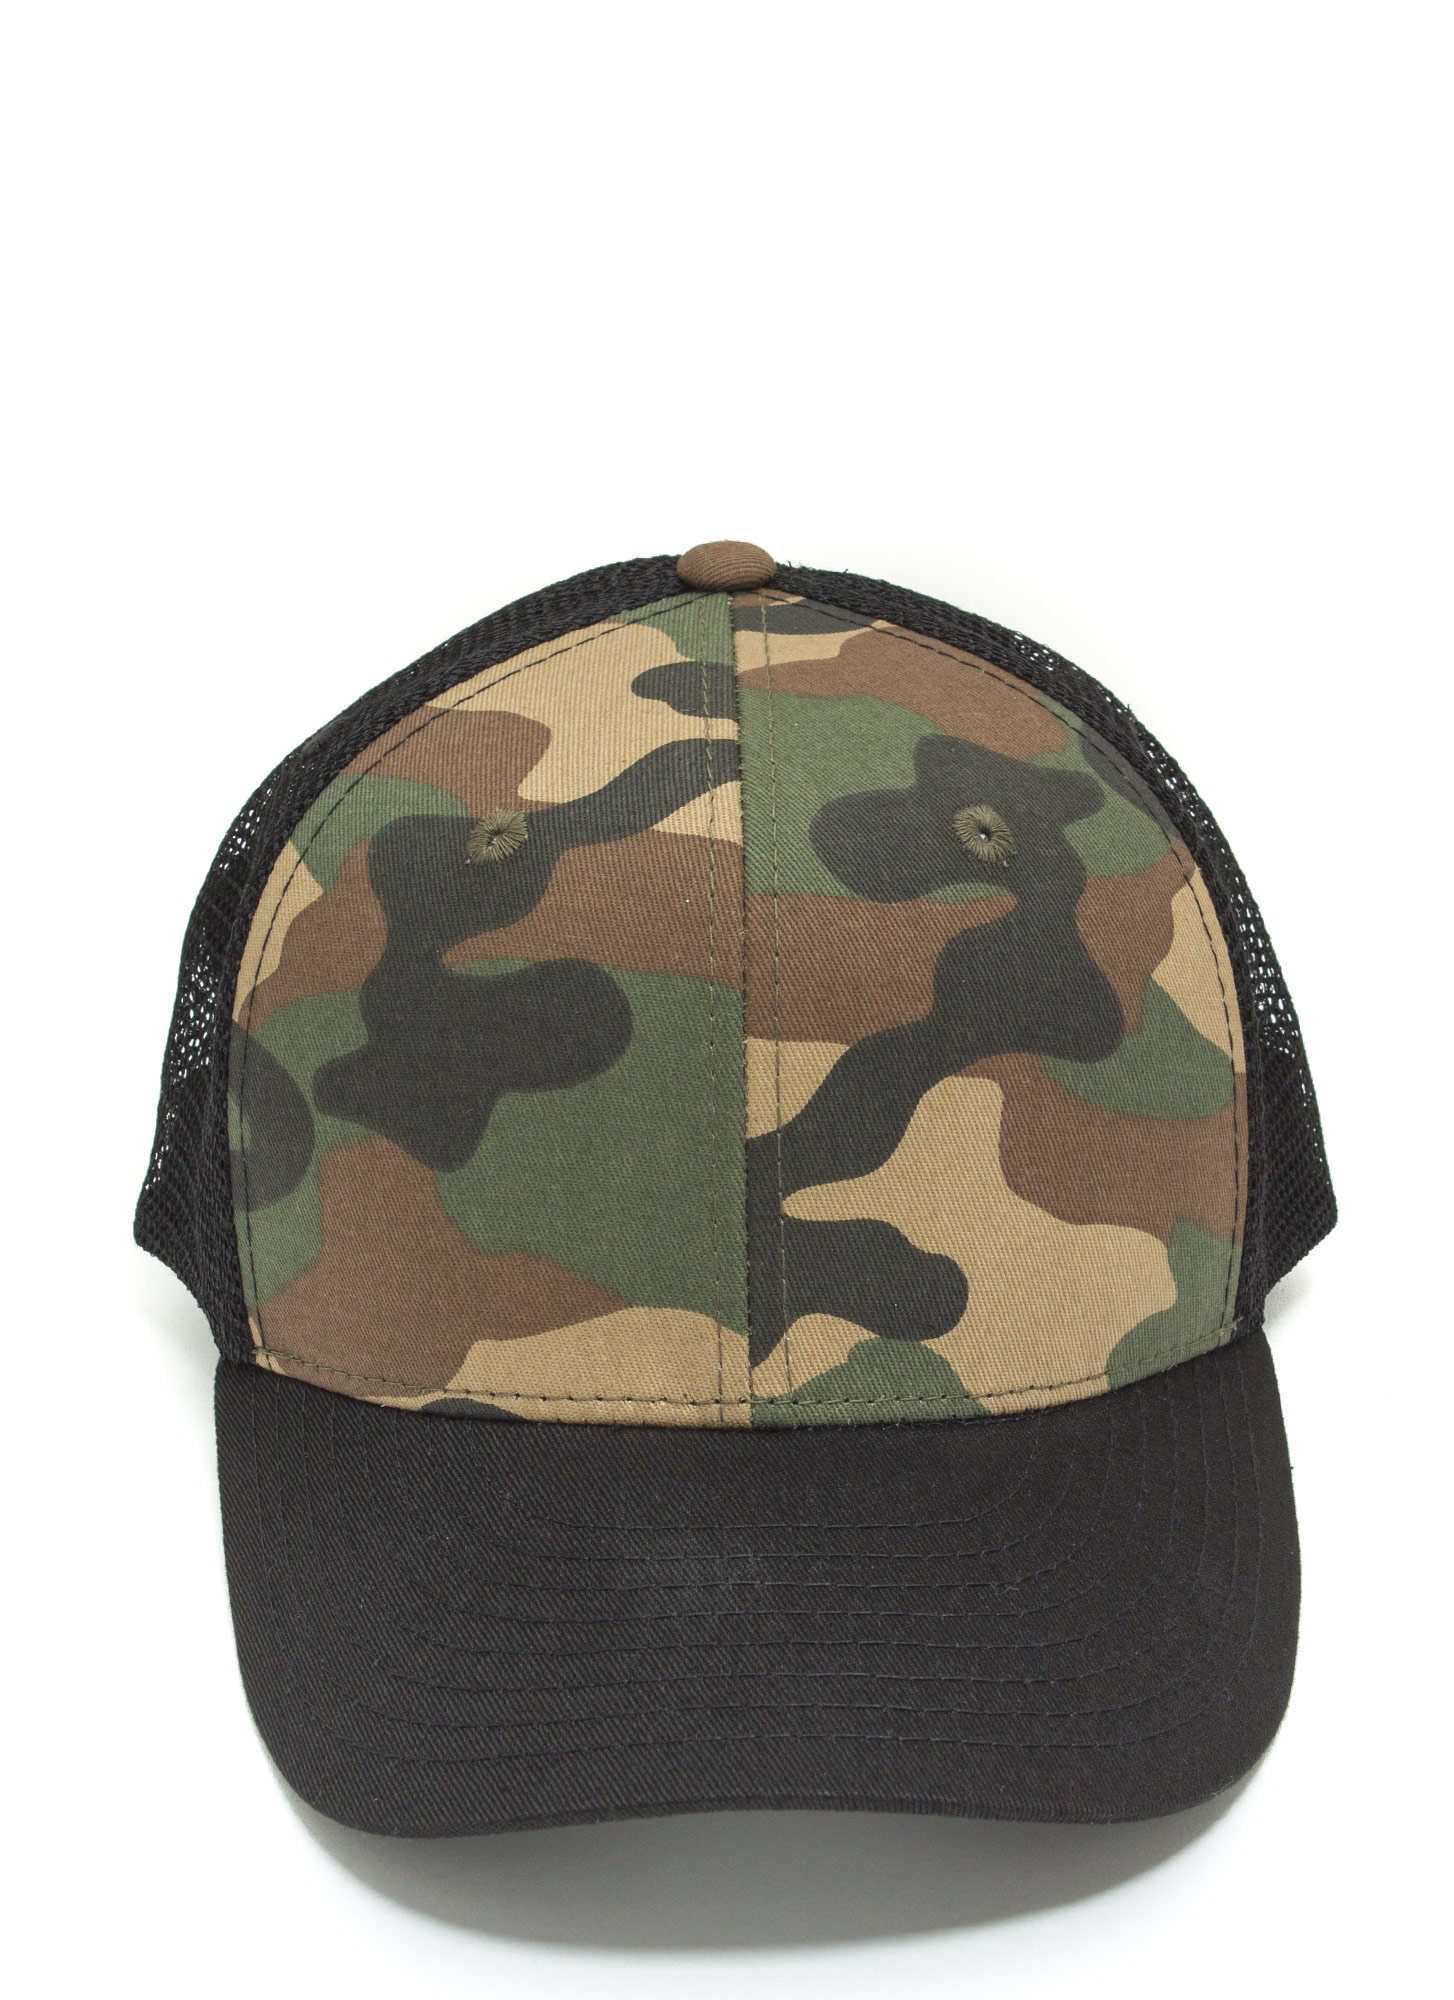 New Accessories: Crazy For Camo Trucker Snapback BLACKOLIVE